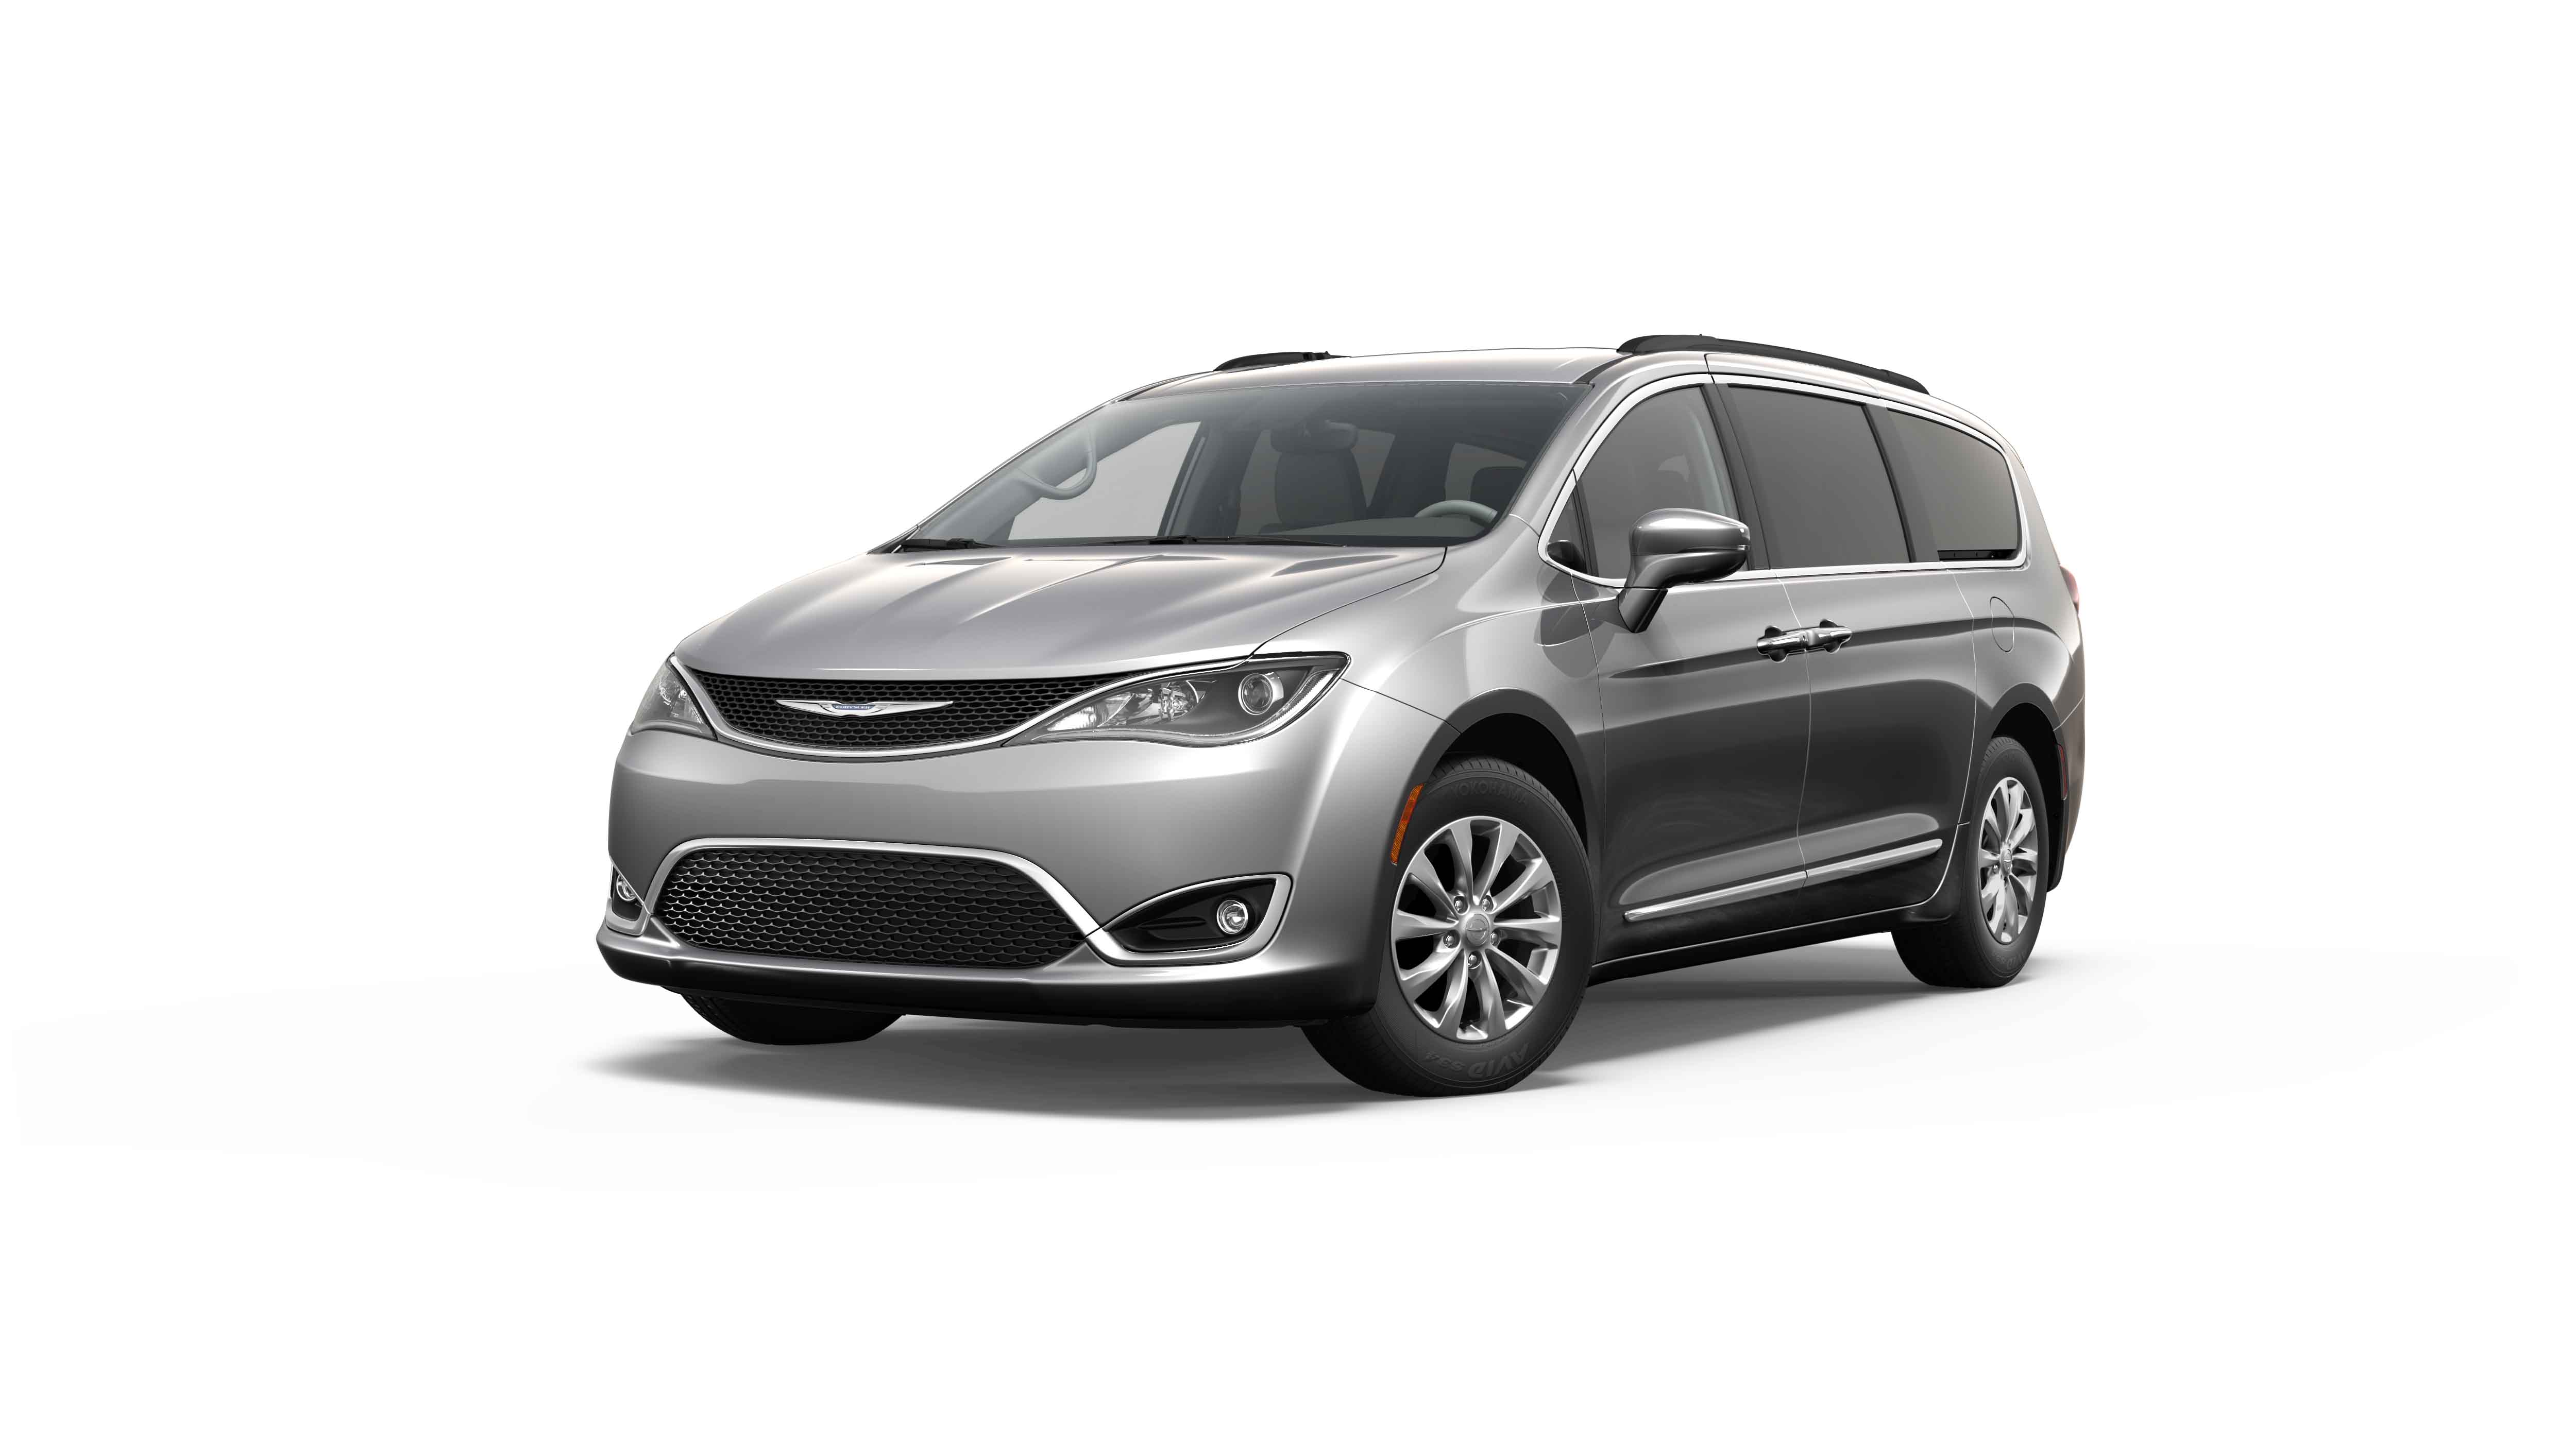 2017 Chrysler Pacifica Touring L Exterior